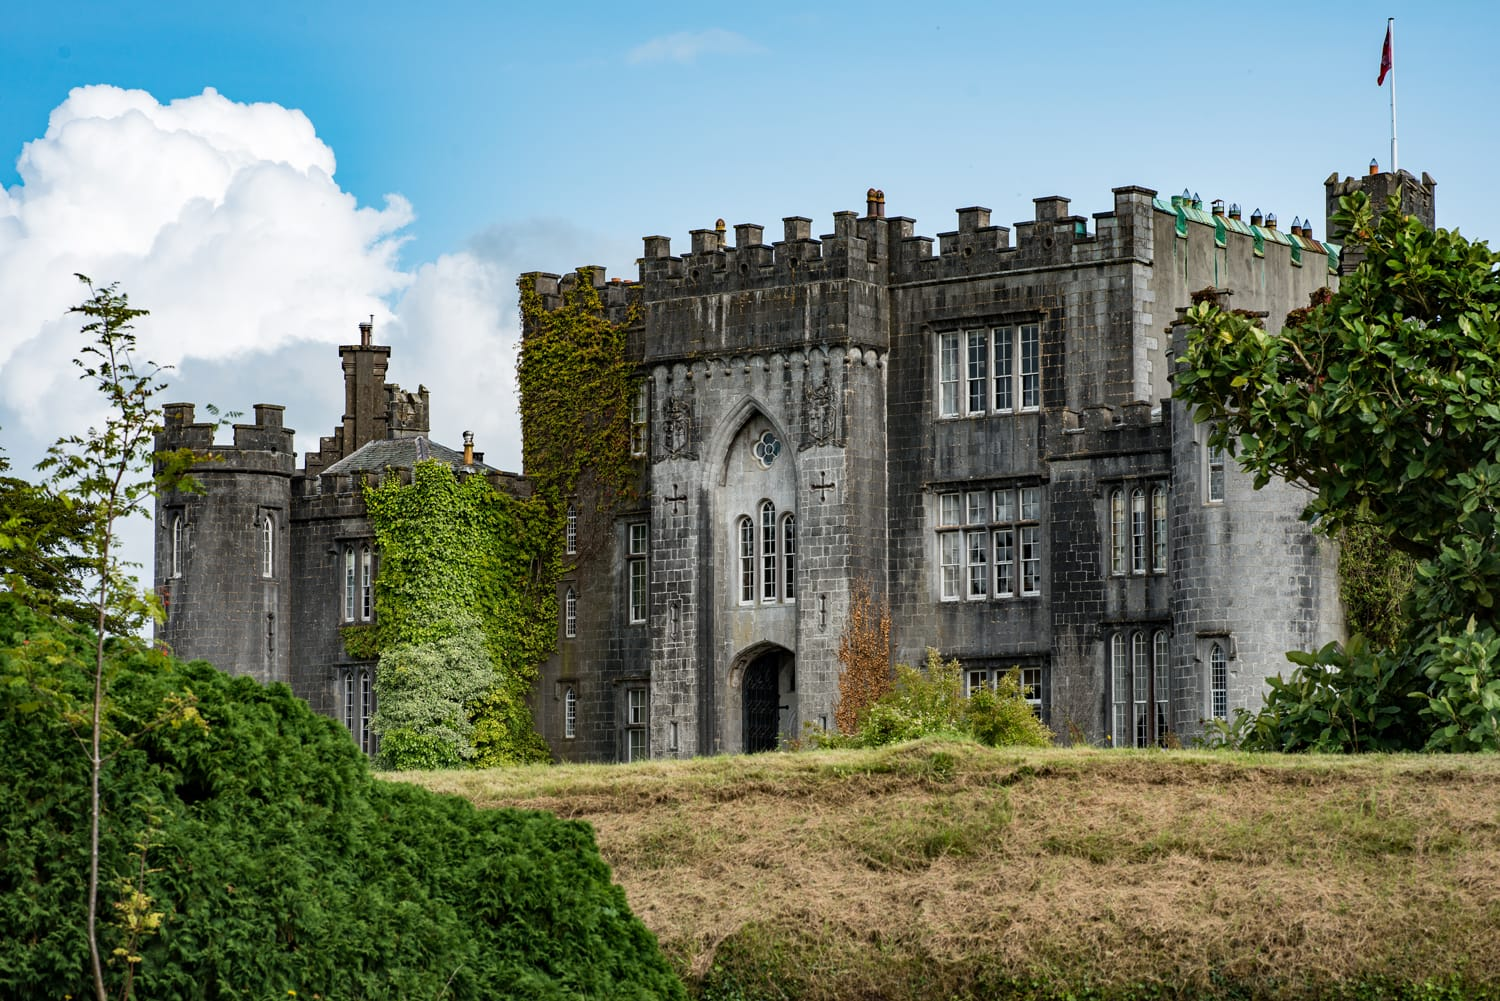 Birr Castle in County Offaly, Ireland